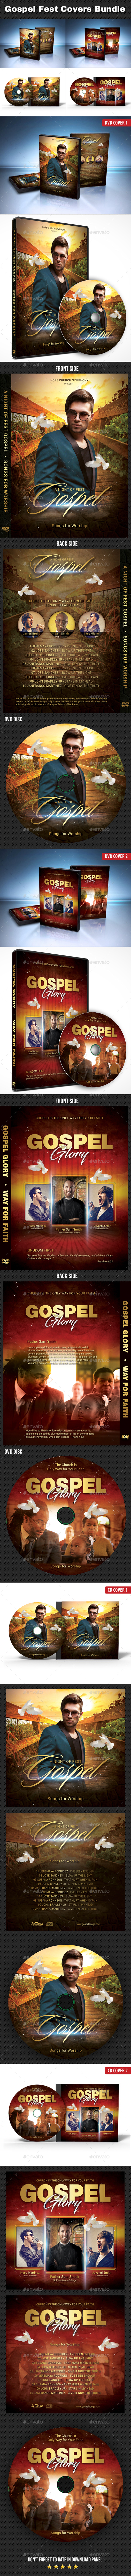 GraphicRiver Gospel Fest CD DVD Cover Templates Bundle 20785090